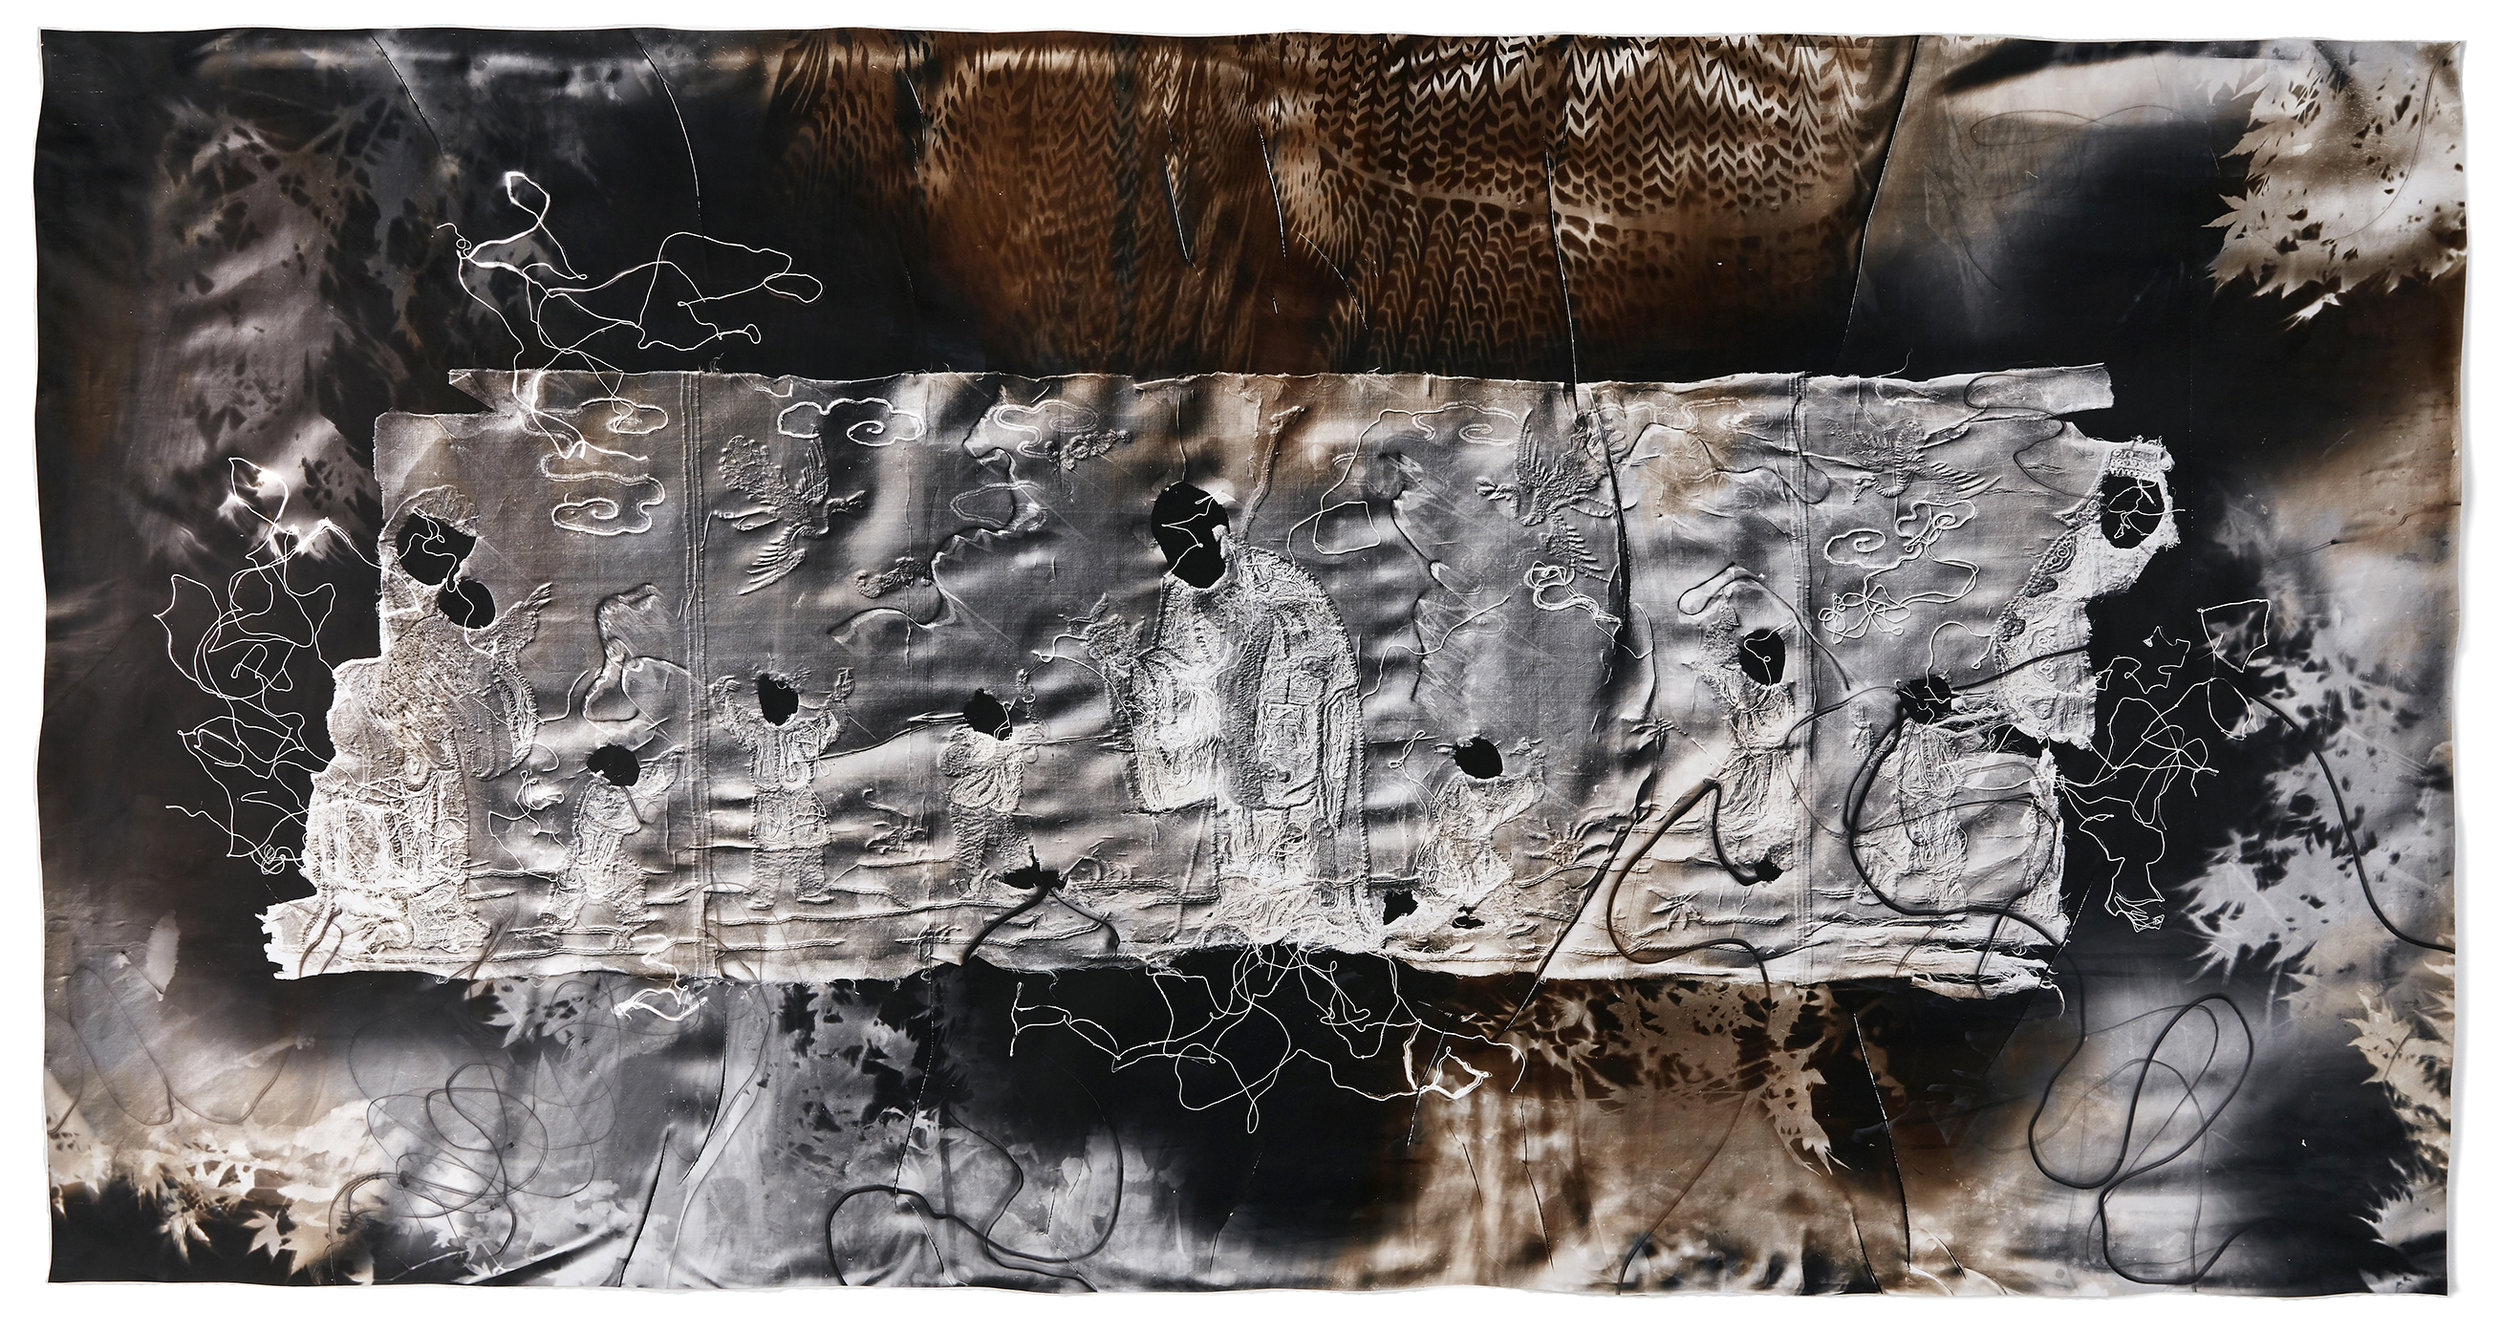 KLEA McKENNA  Faceless Immortals (1) , 2019 Unique photographic relief. Photogram on gelatin silver fiber paper. Sepia and Selenium toned. Impression of a fragment of silk tapestry embroidered with gold-wrapped thread. China. Qing Dynasty - circa 1820-1860s. 42 x 80 in; frame: 46.5 x 84.5 in